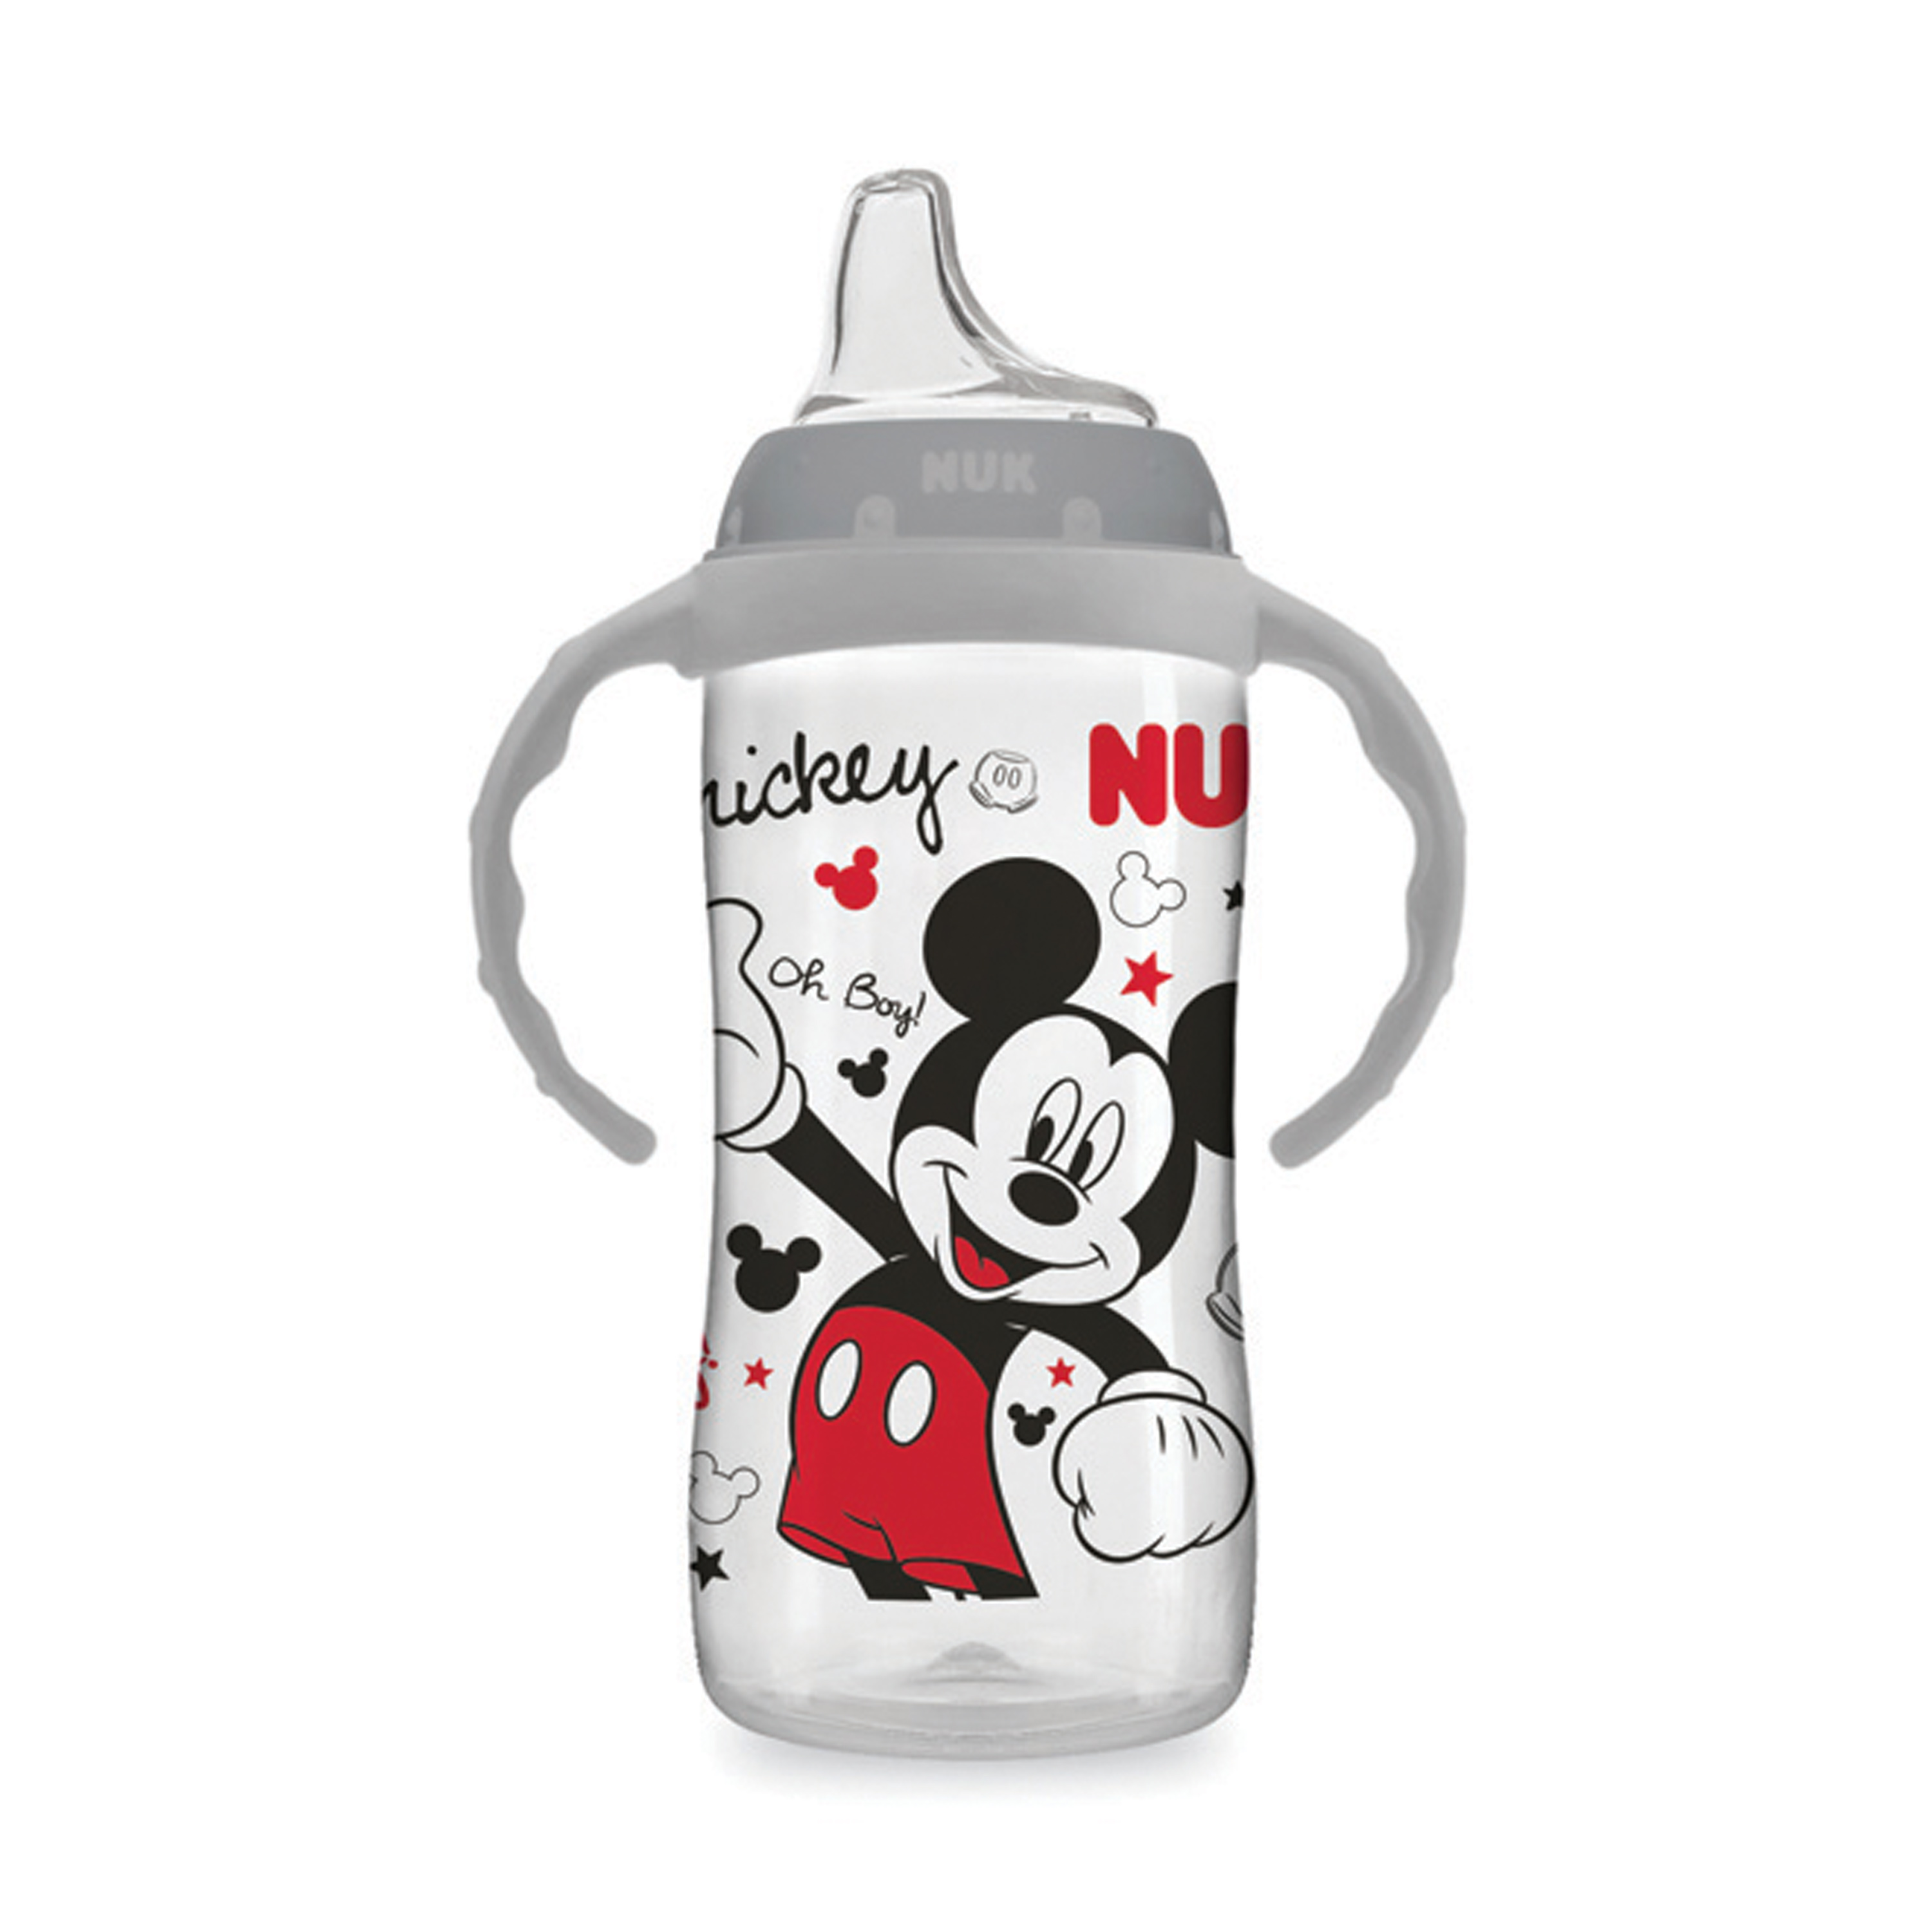 NUK Disney Large Learner Sippy Cup with Handles- Mickey Mouse, 10 oz